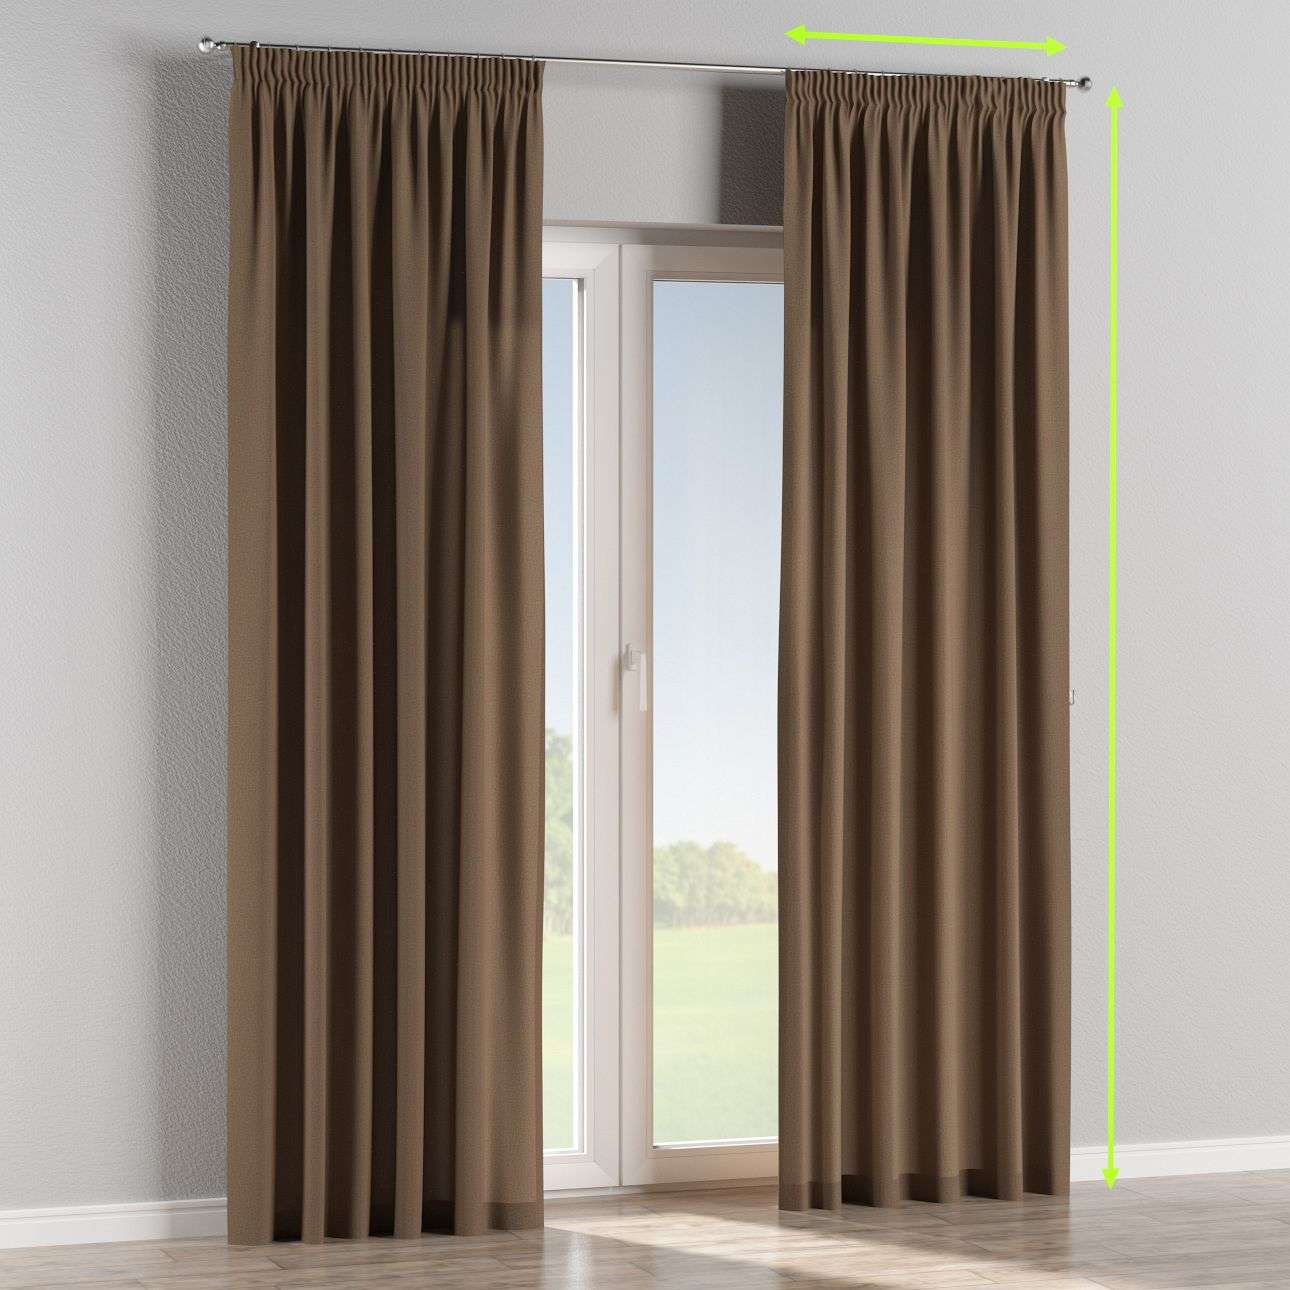 Pencil pleat curtains in collection Edinburgh , fabric: 115-85